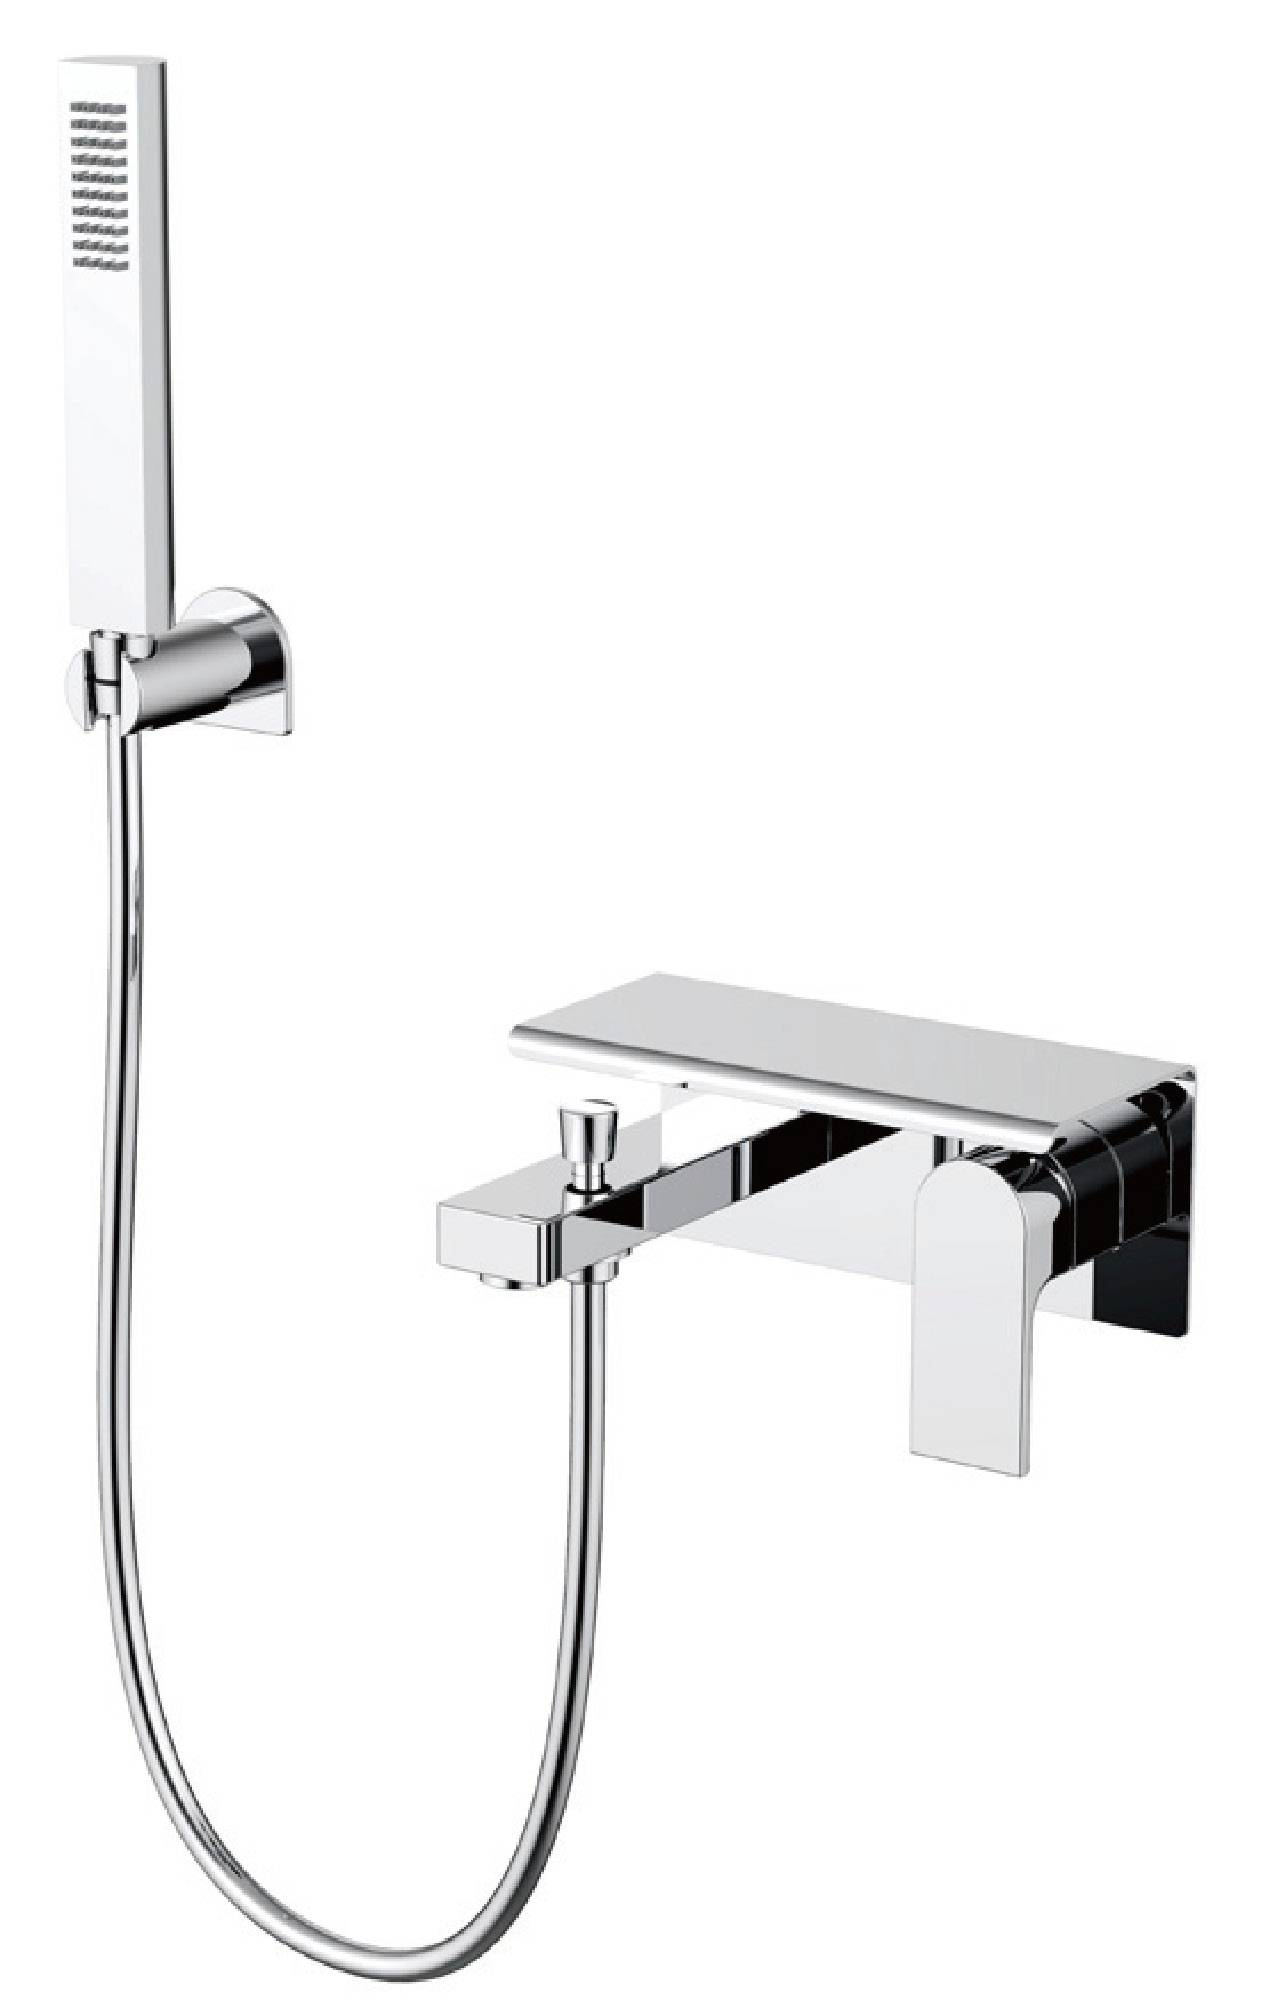 New design chrome brass in-wall bathroom concealed shower faucet